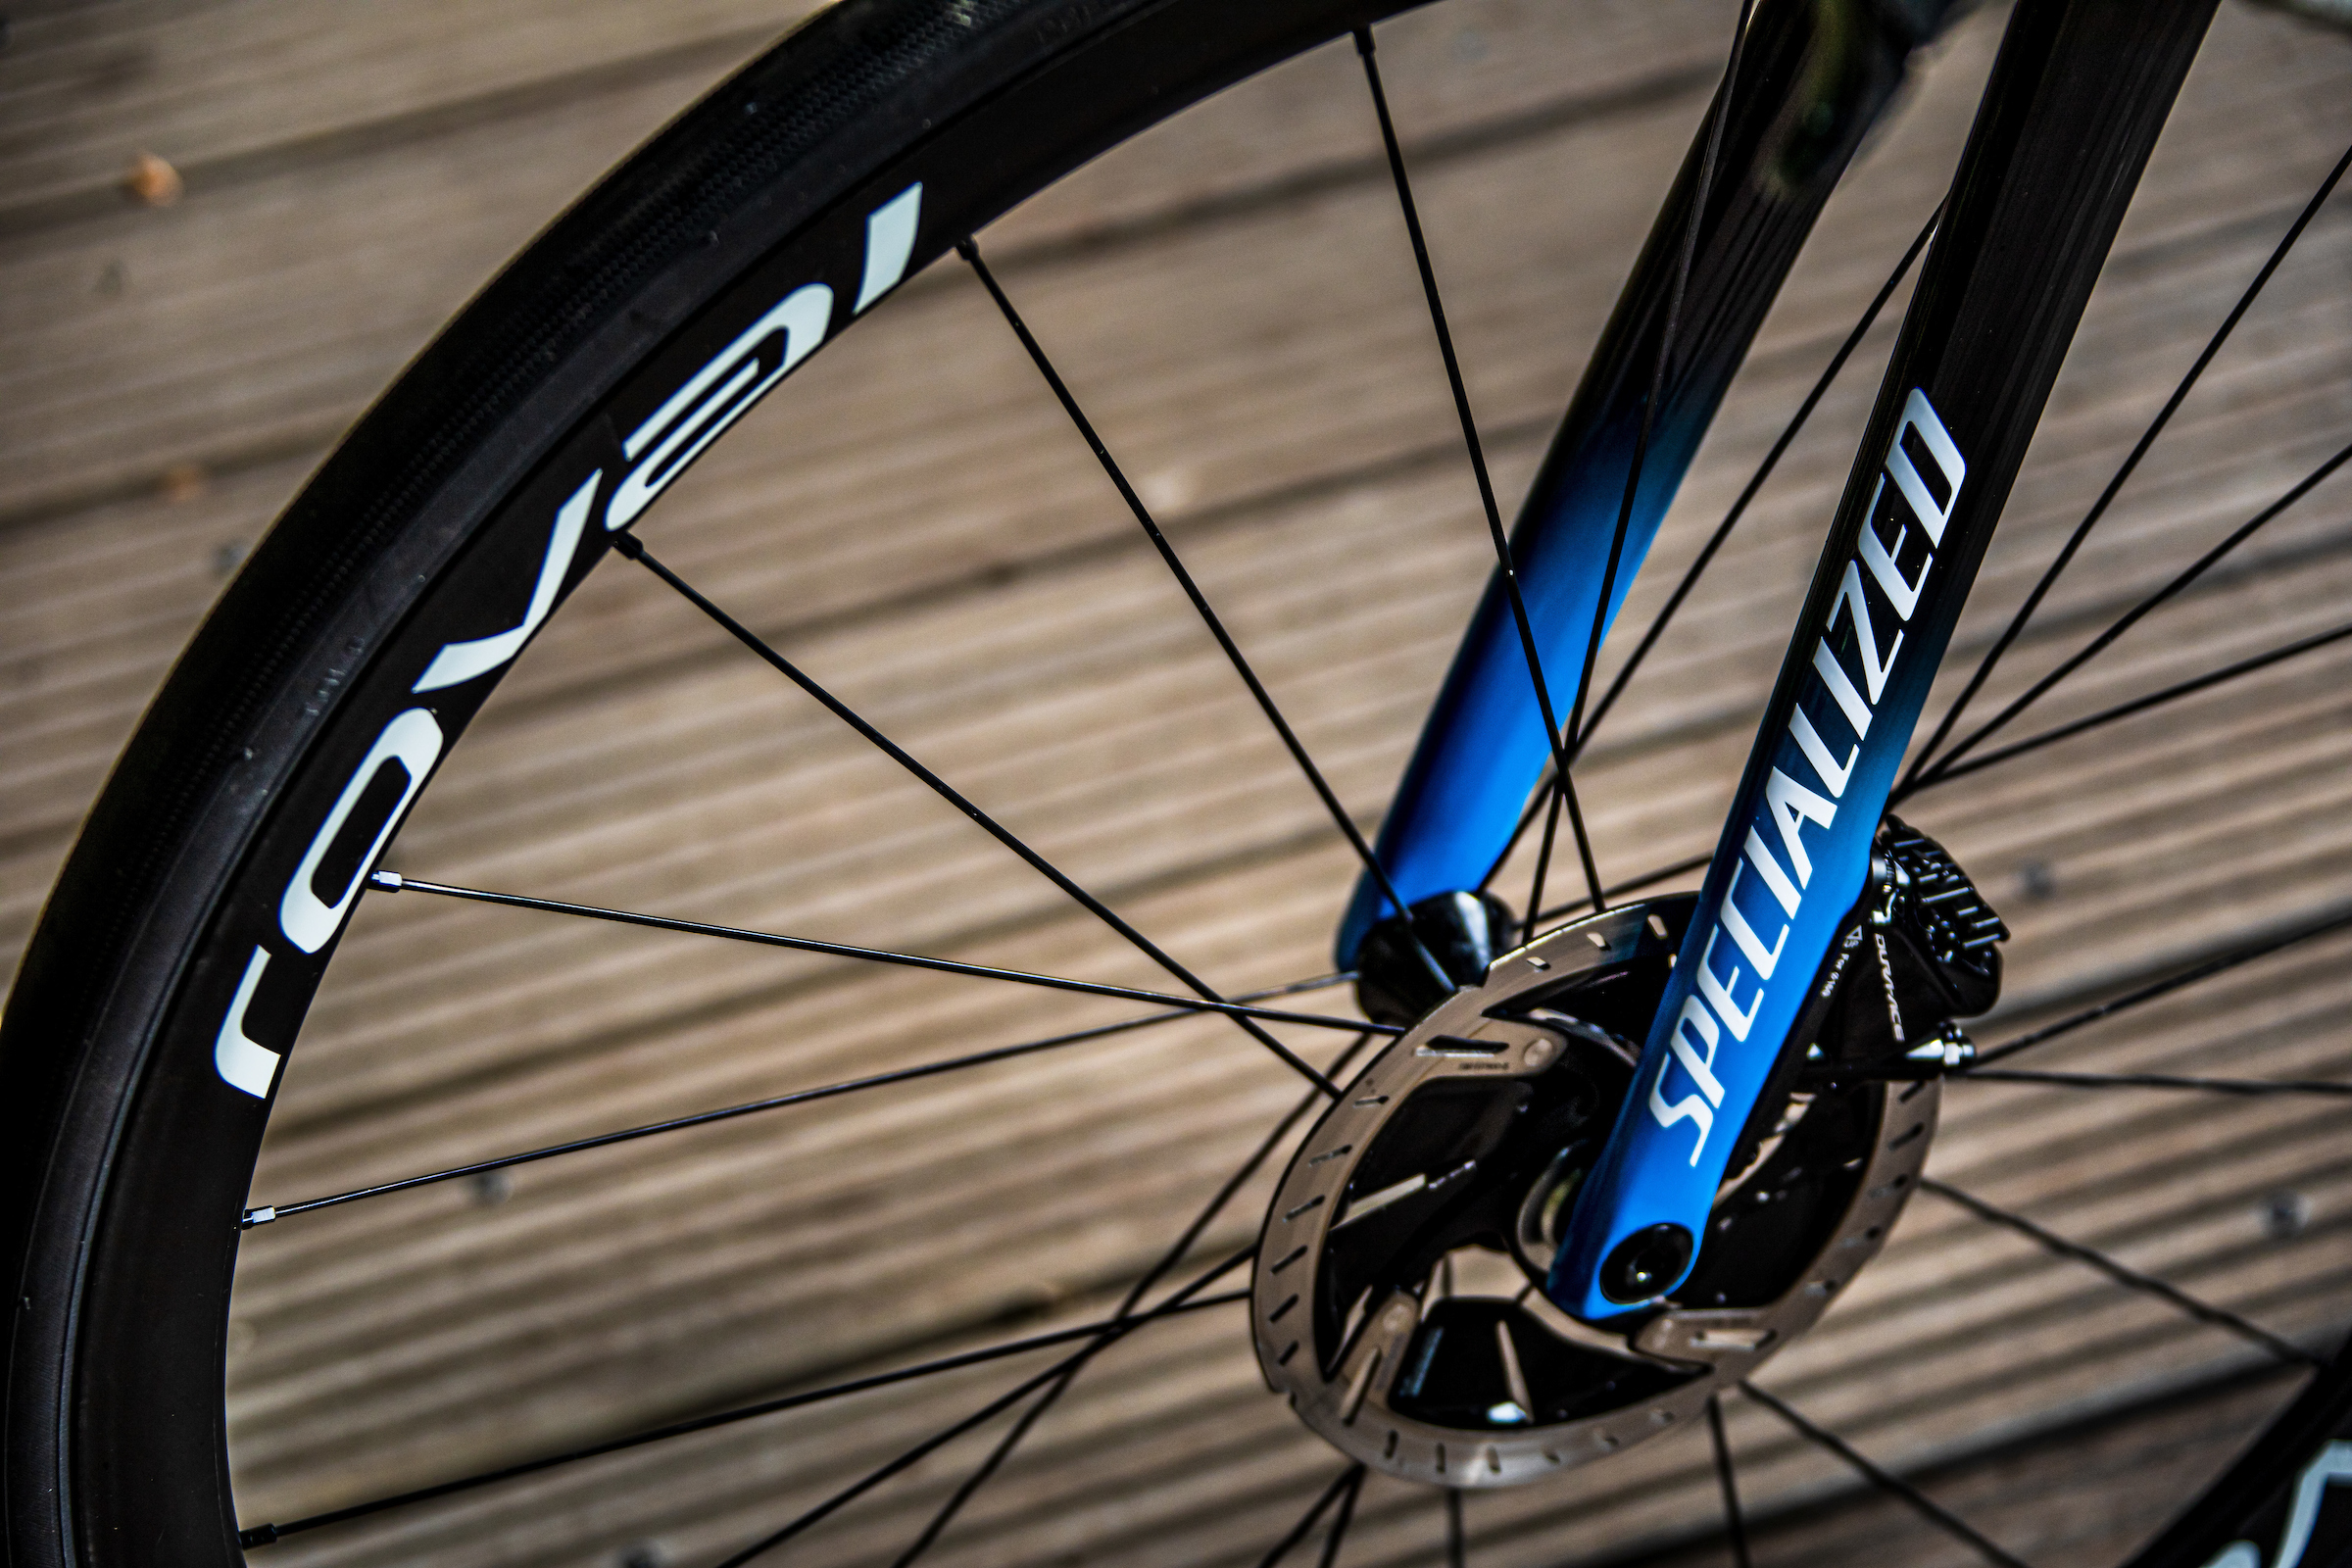 Julian Alaphilippe's new Specialized Tarmac SL7. Photo by Wout Beel/Deceuninck - Quick-Step